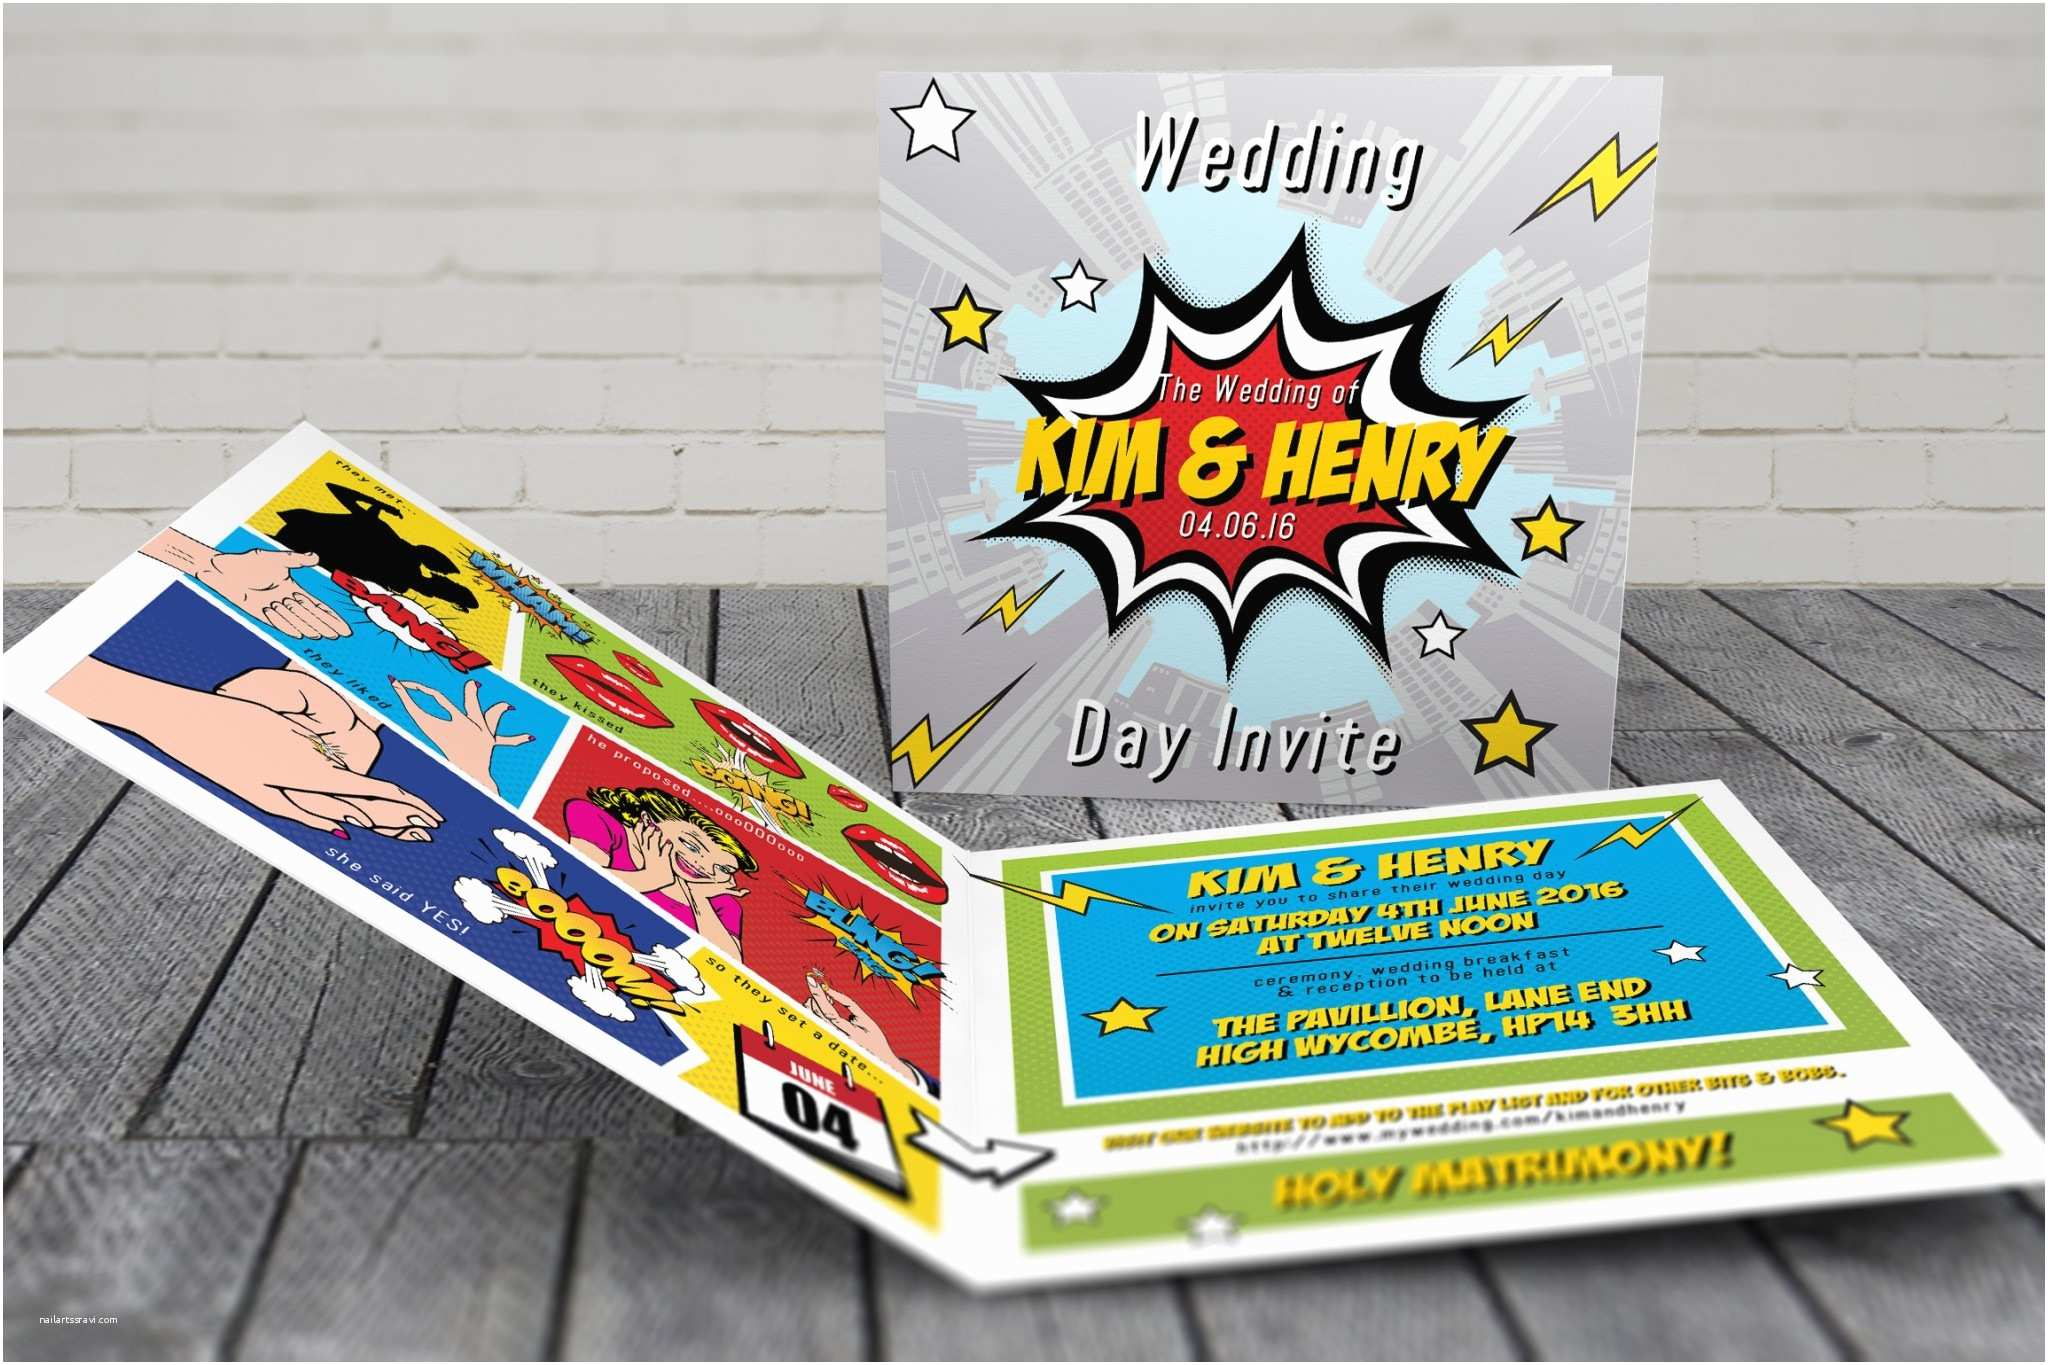 Superhero Wedding Invitations Superhero Wedding Invitations